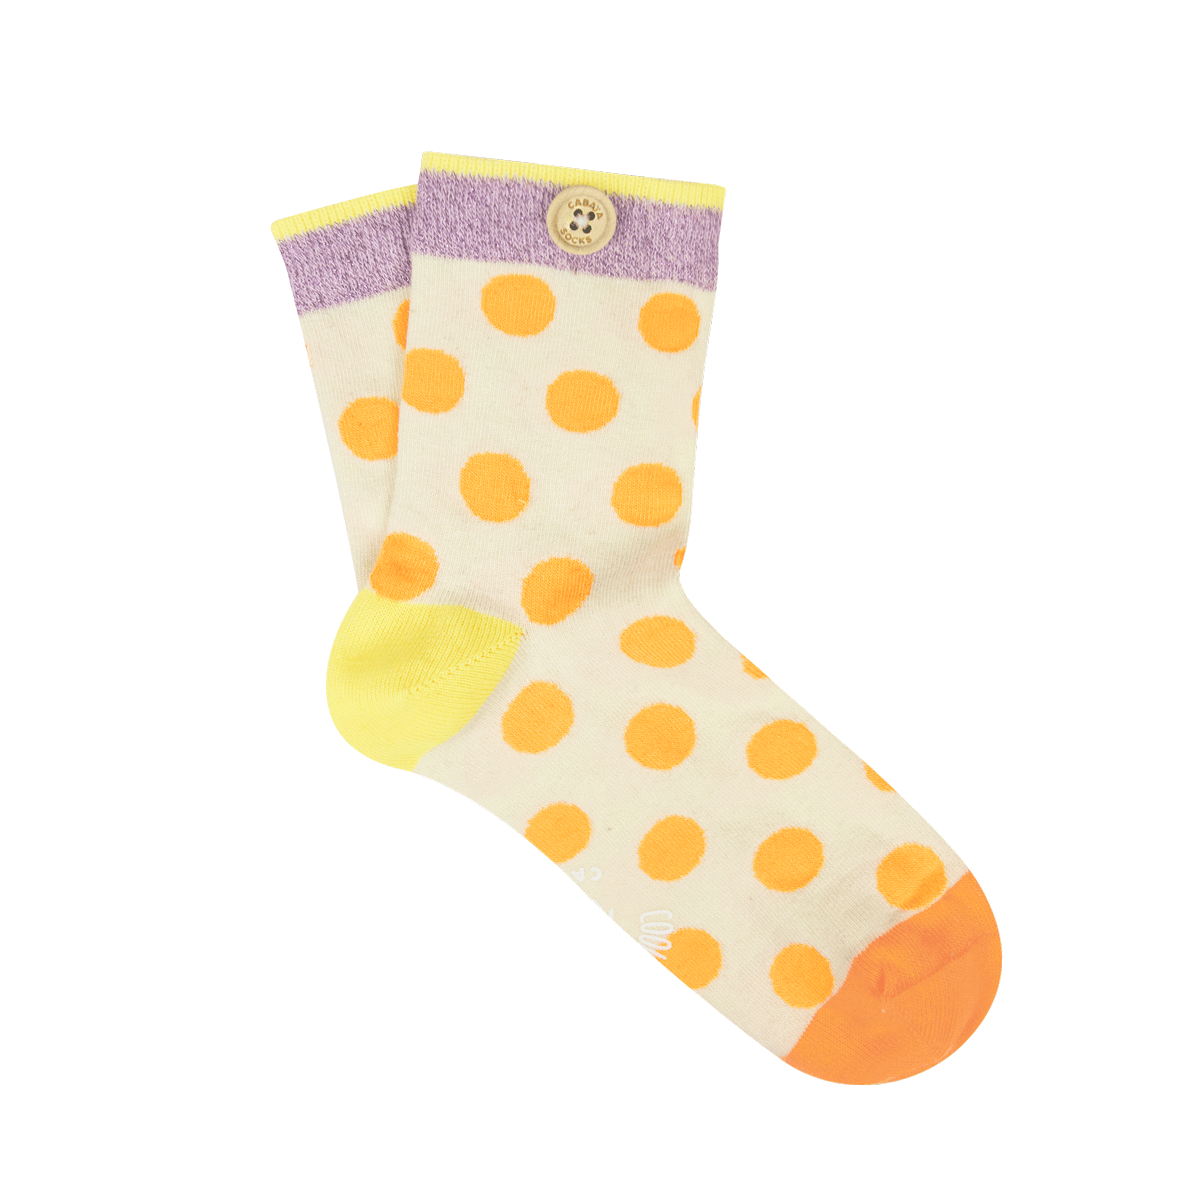 unloosable-socks-button-women-36-41-socks20-laur-ora